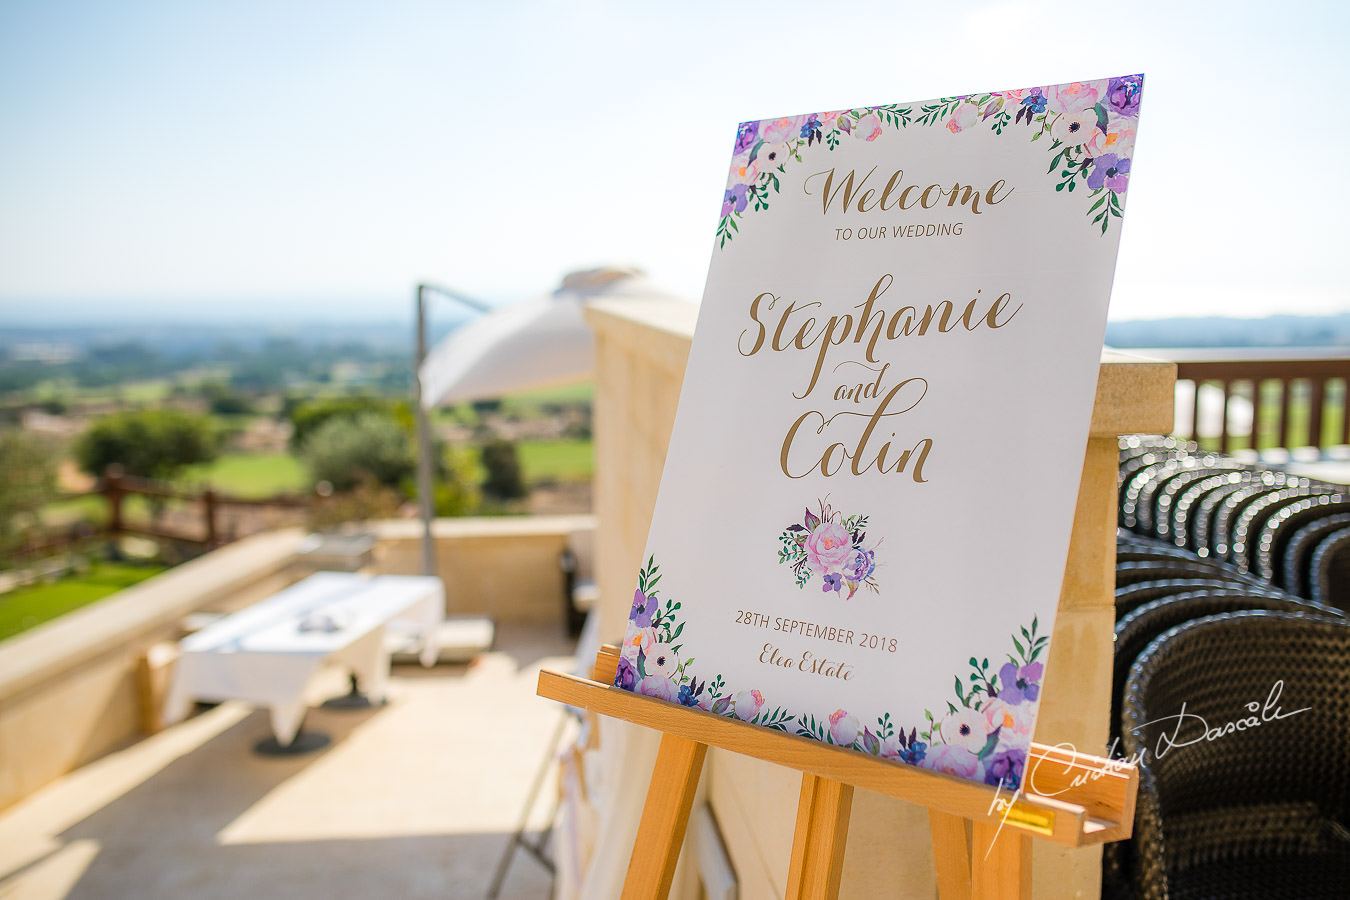 Stylish Wedding Photography at Elea Estate. Moments captured by Cyprus Wedding Photographer Cristian Dascalu